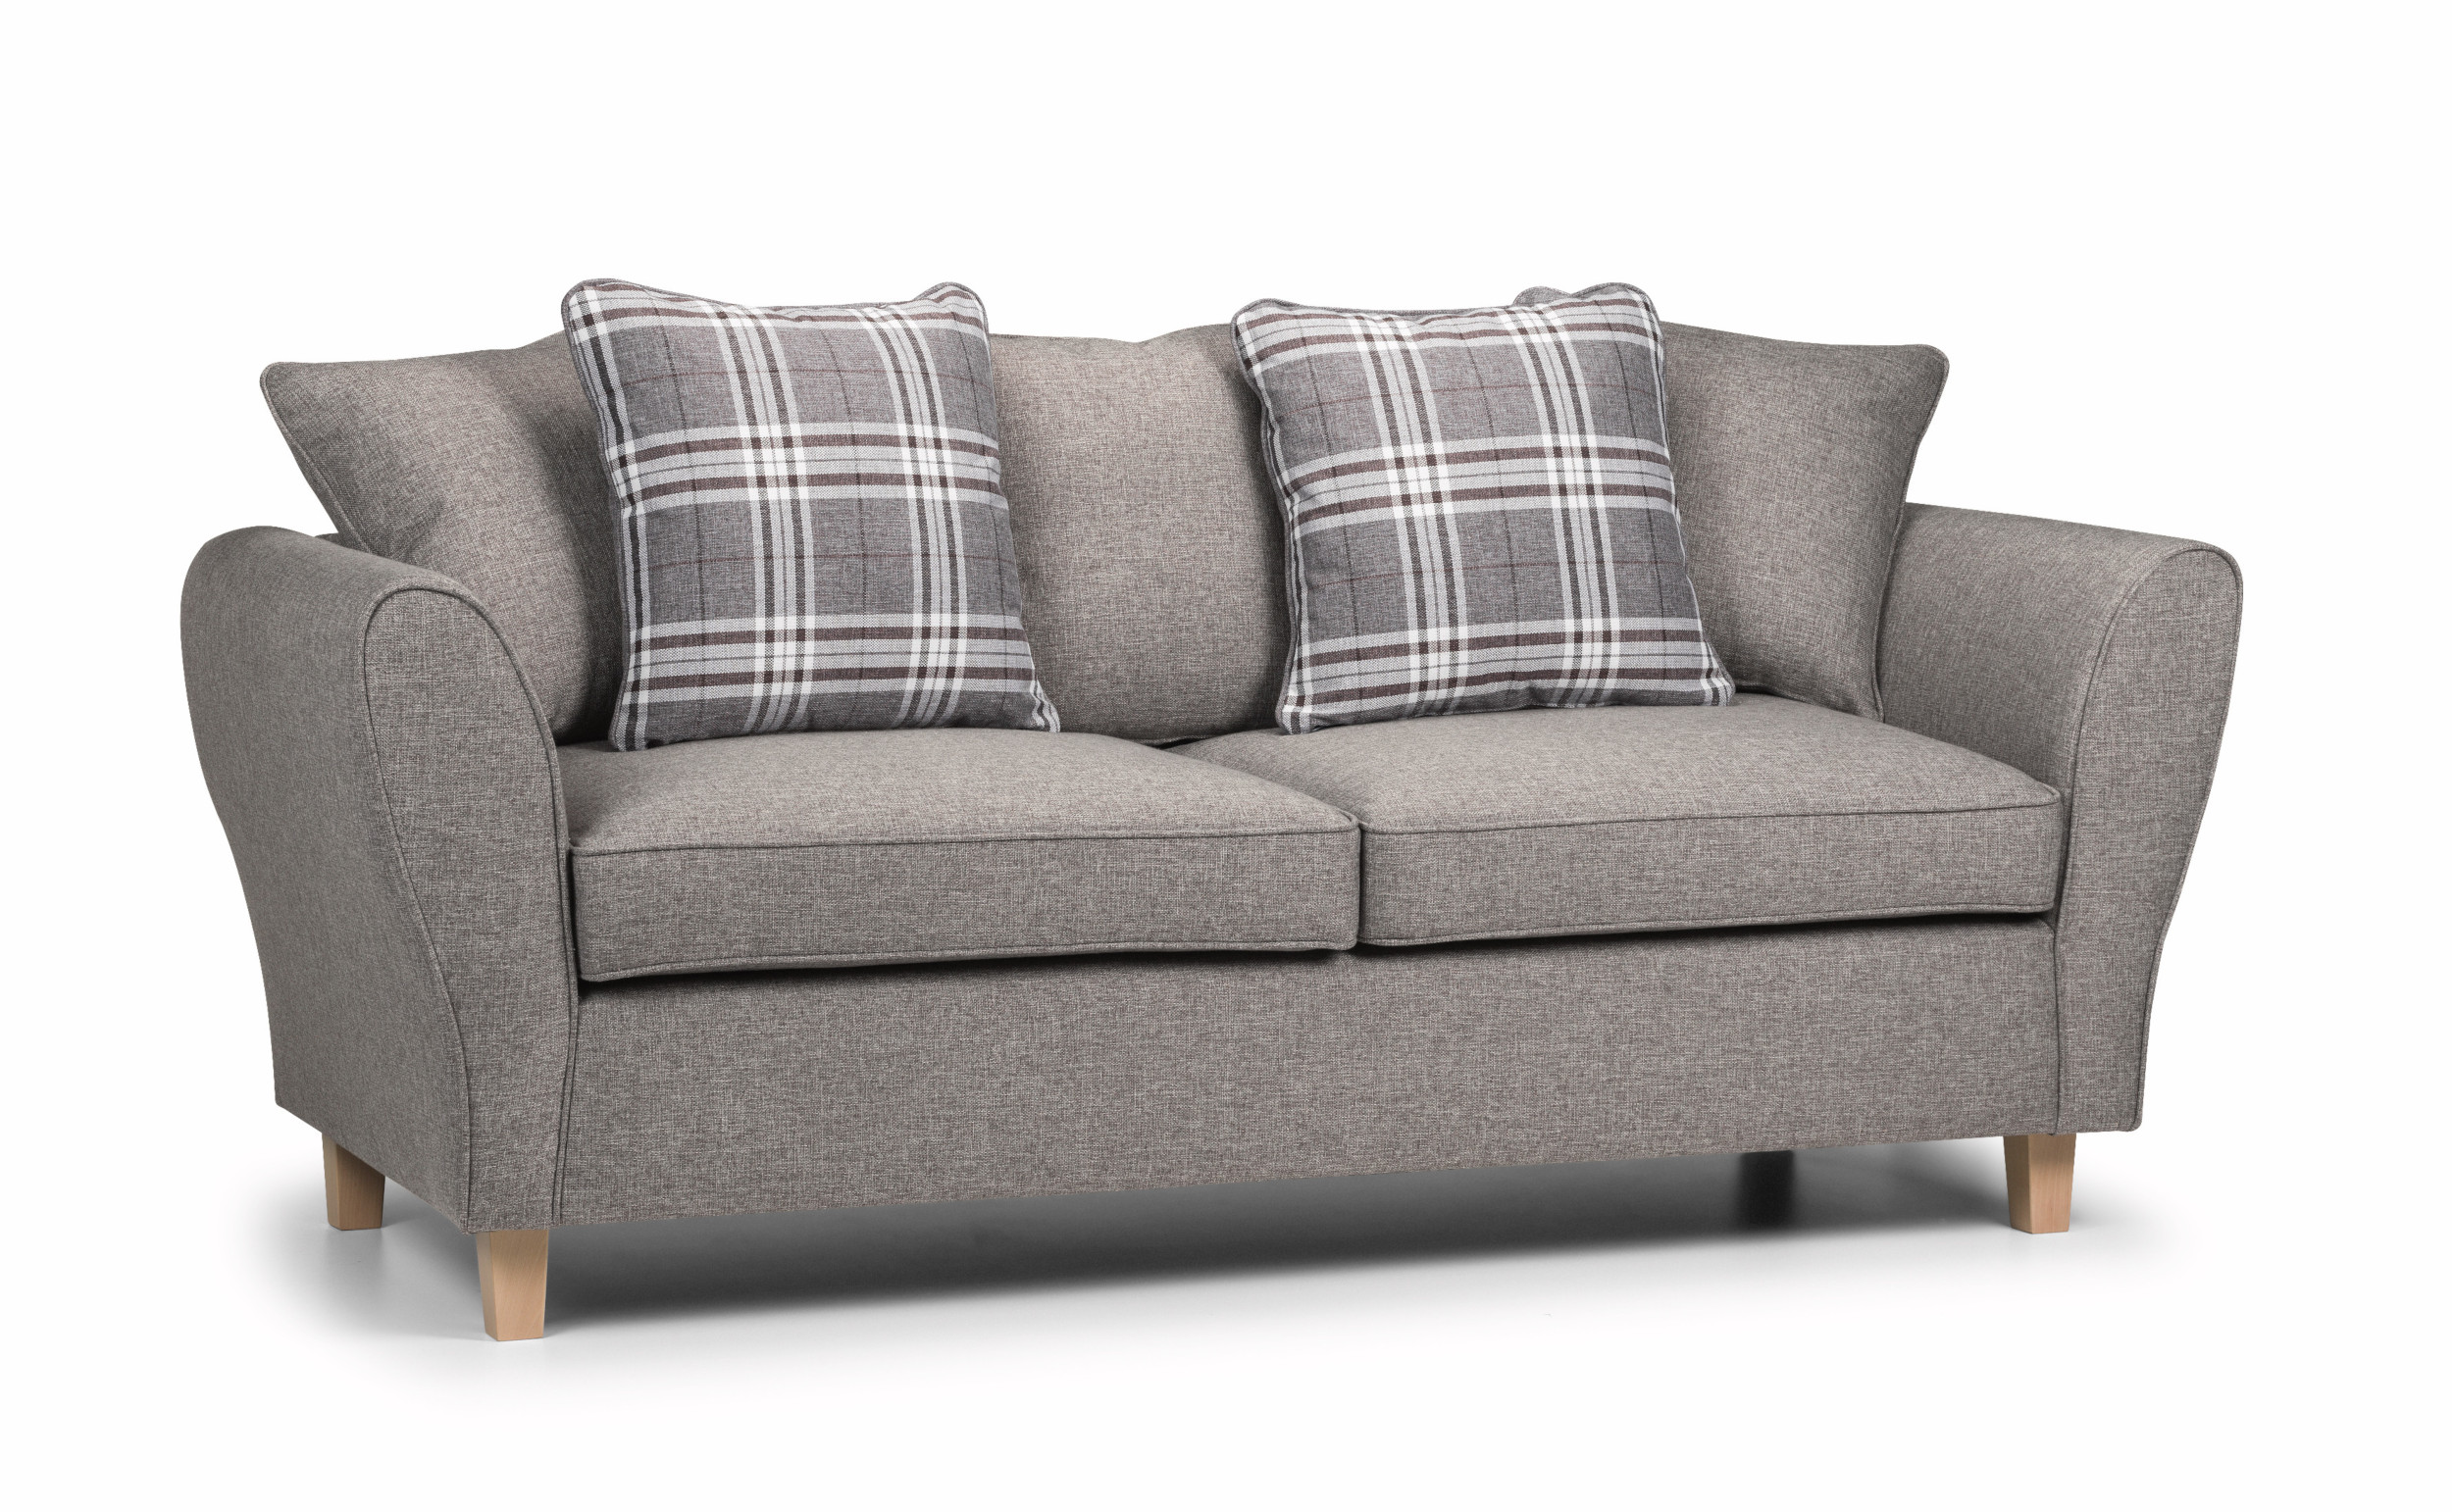 Ashbourne 2 seater silver new.jpg